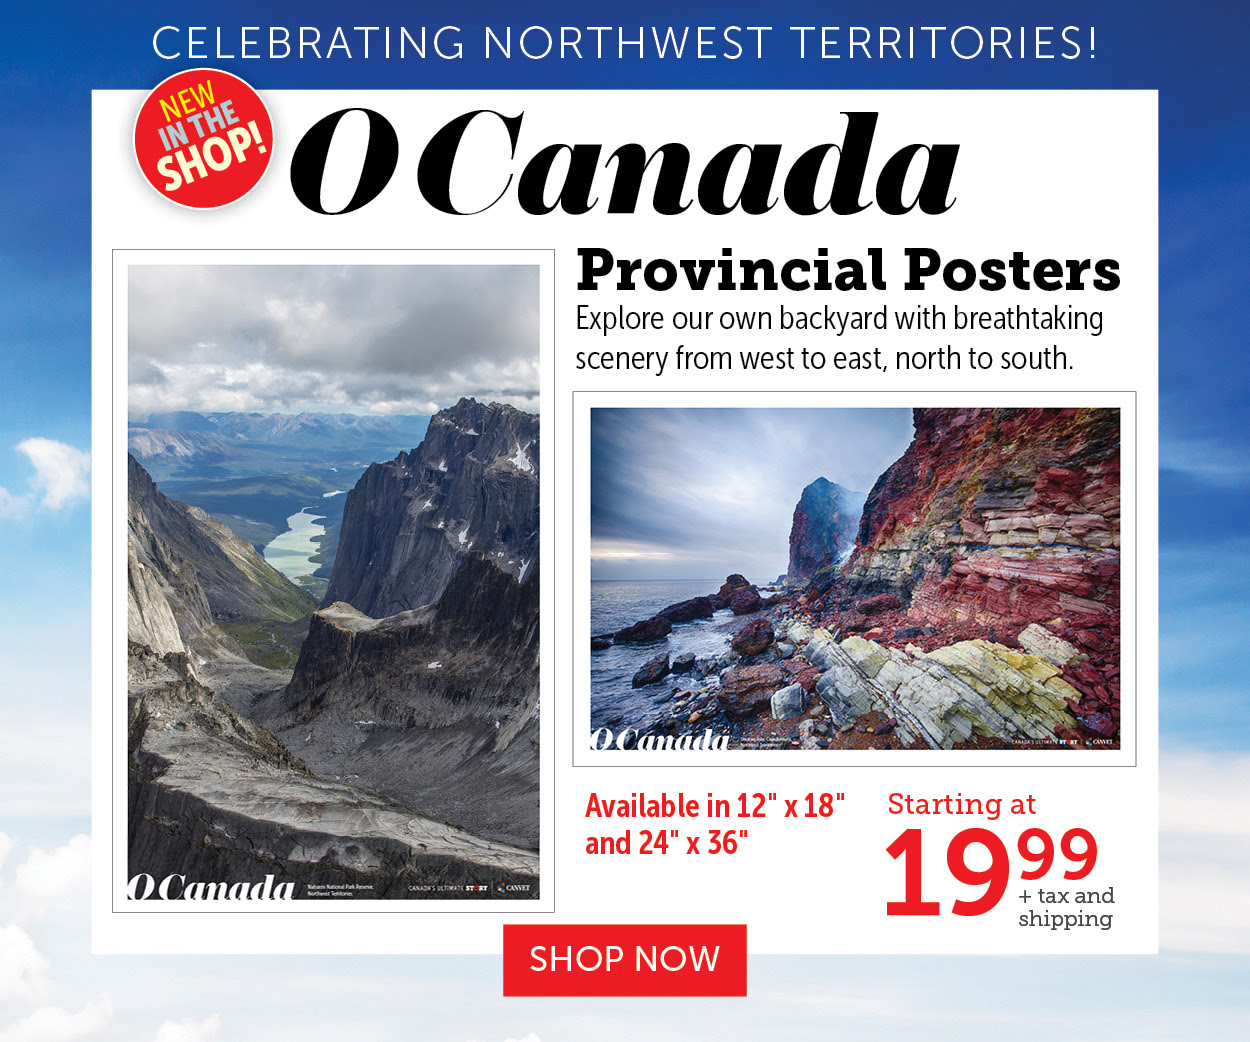 O Canada Provincial Posters